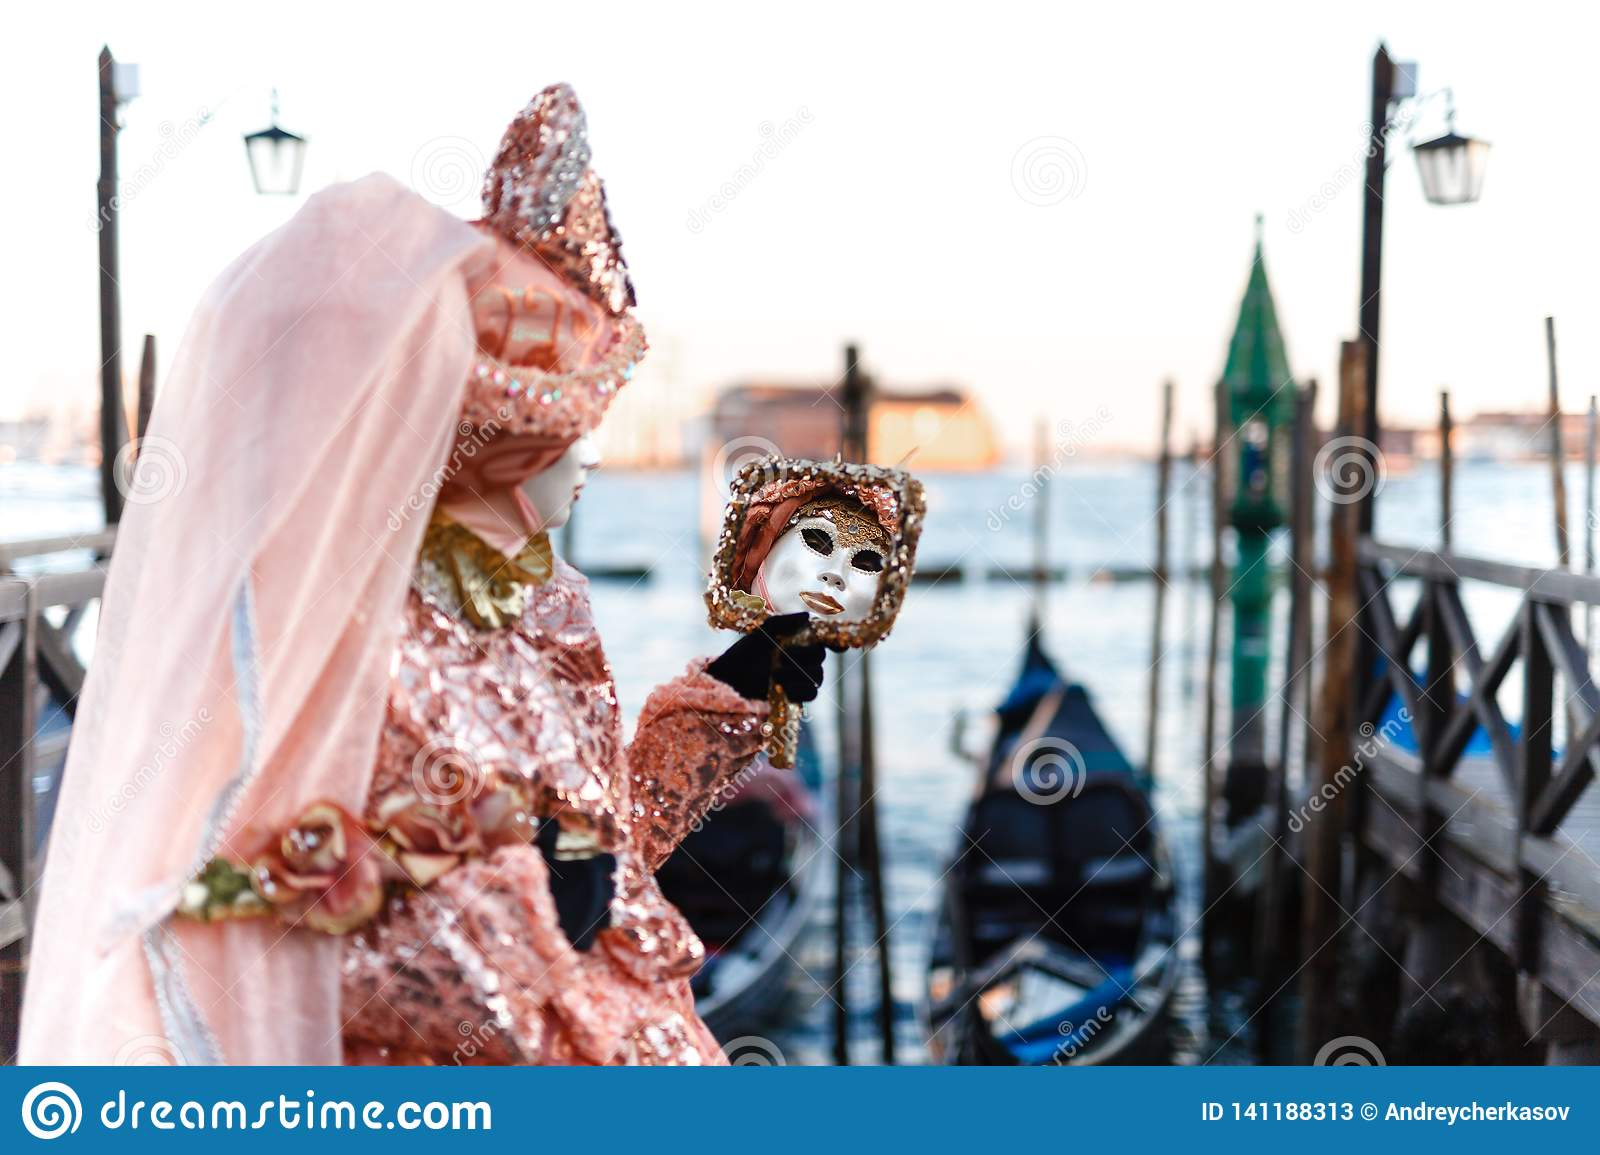 Venetian Masked Model From The Venice Carnival 2019 With